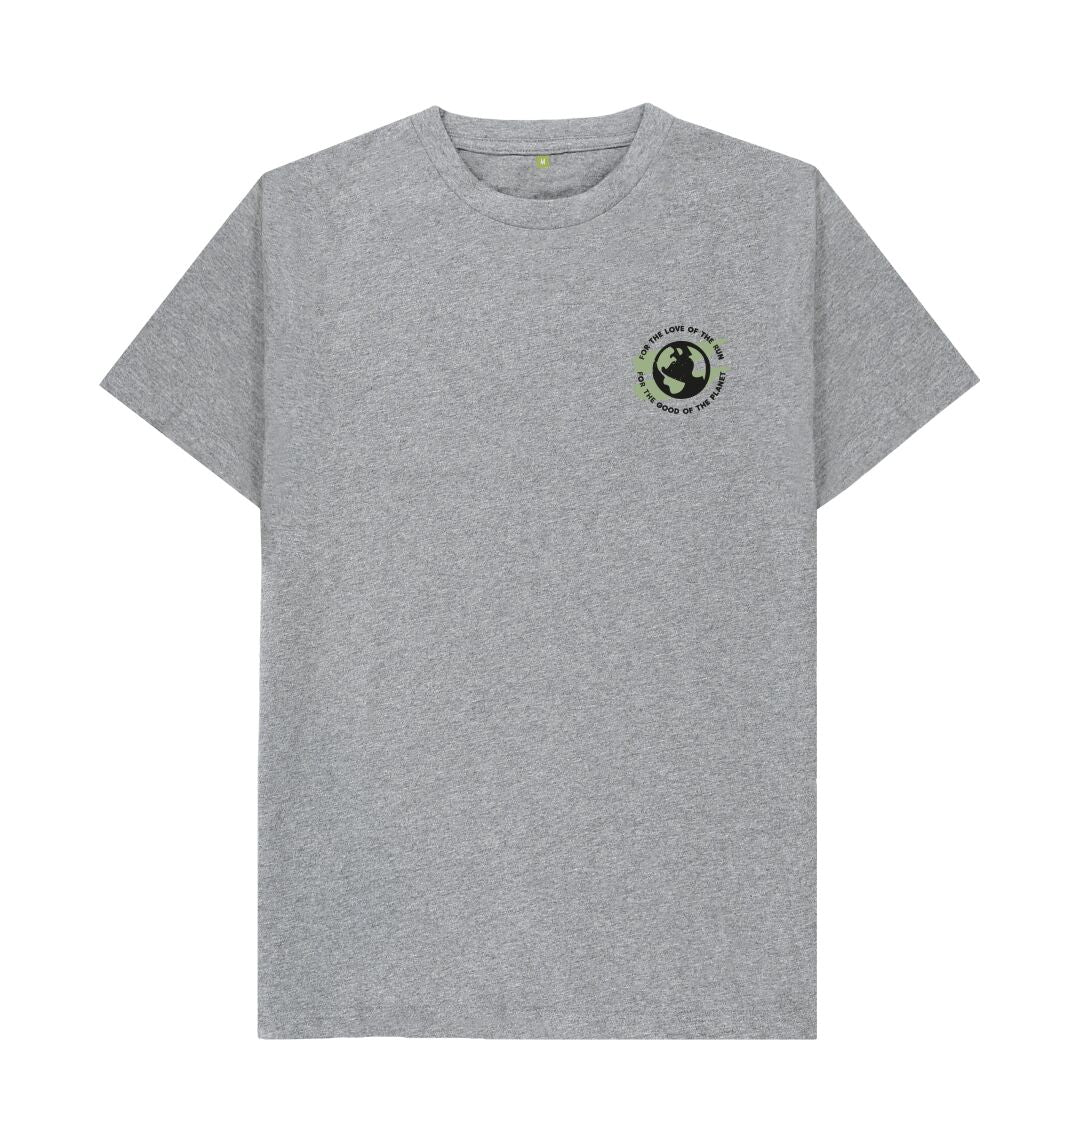 Athletic Grey Earth Tee in Terrain - Men's